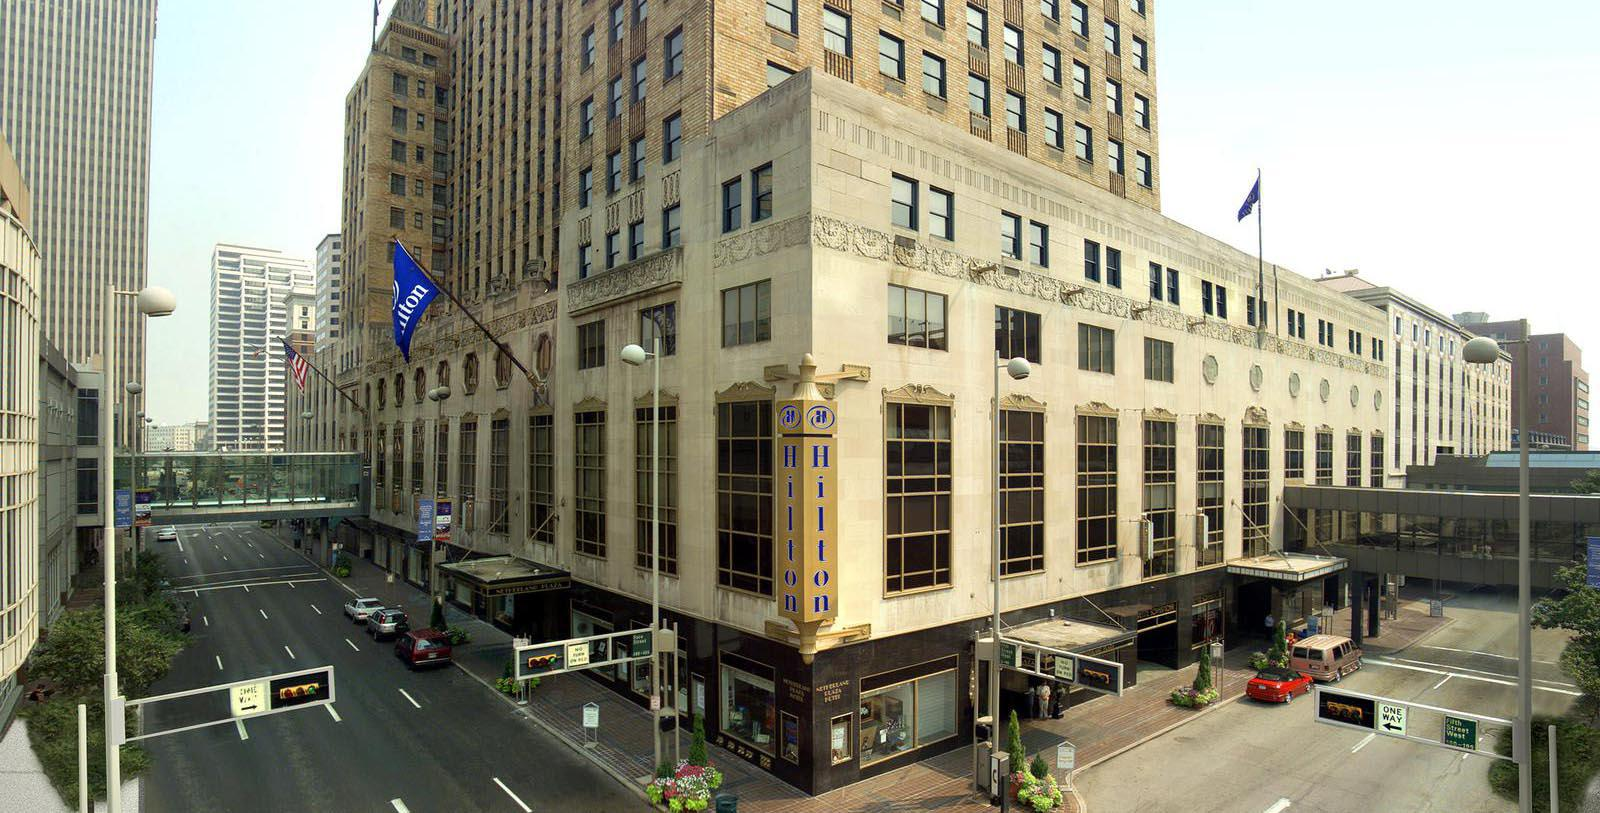 Image of hotel exterior Hilton Cincinnati Netherland Plaza, 1931, Member of Historic Hotels of America, in Cincinnati, Ohio,Special Offers, Discounted Rates, Families, Romantic Escape, Honeymoons, Anniversaries, Reunions